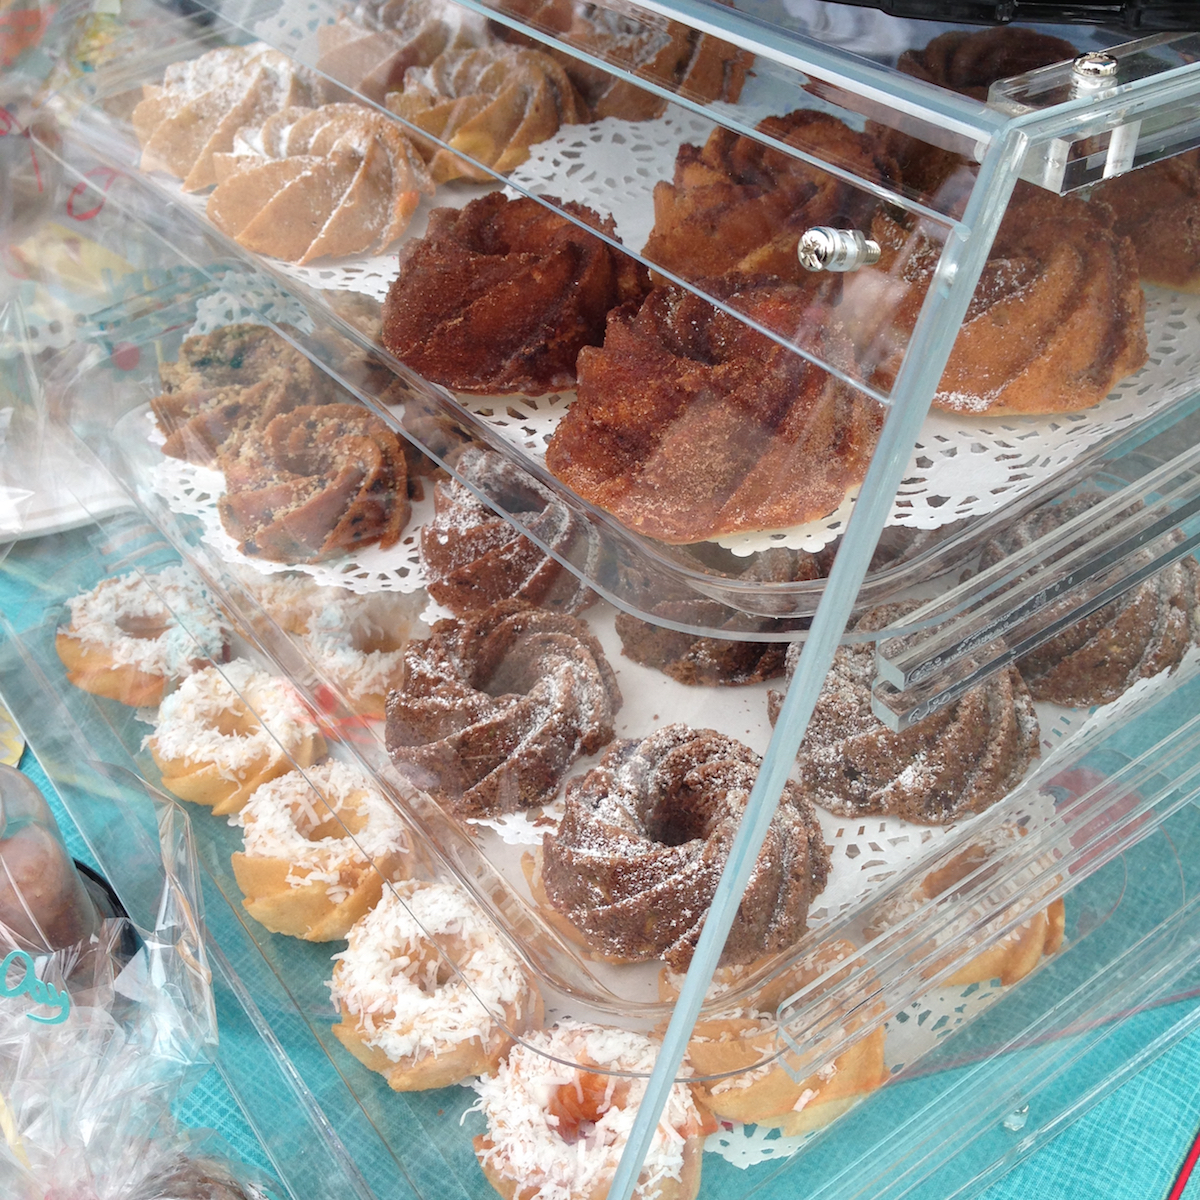 Farmers Market Finds: mini bundt cakes